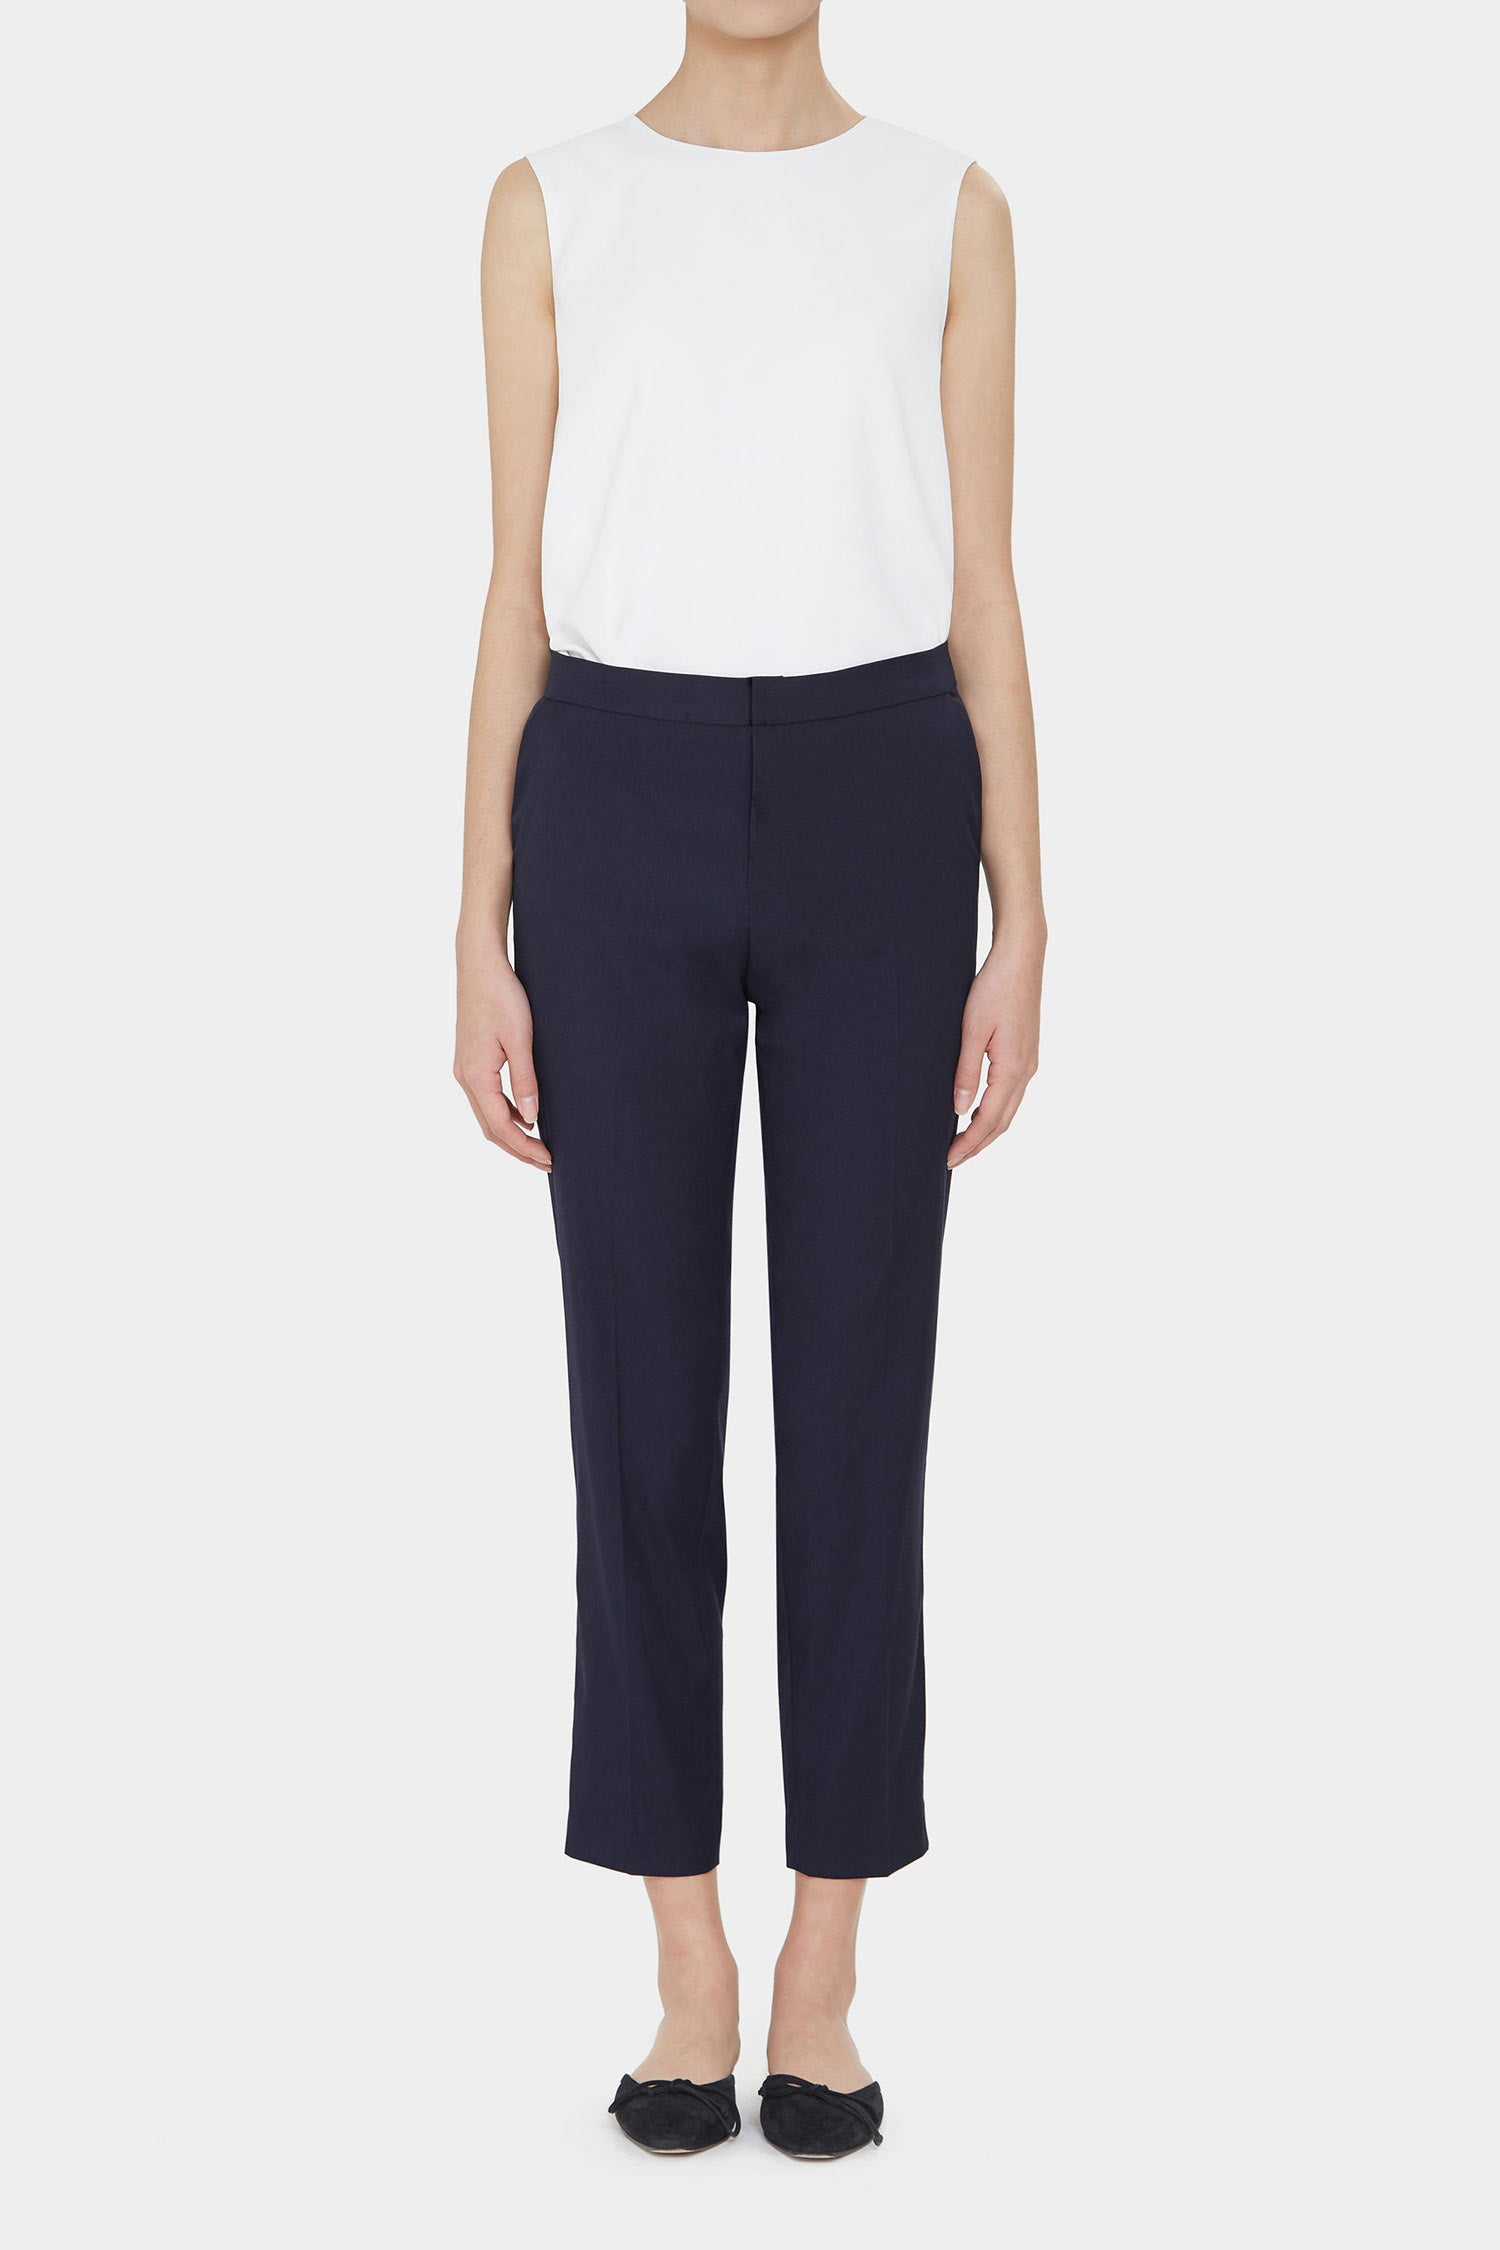 NAVY MORGAN RAYON BLEND PANTS